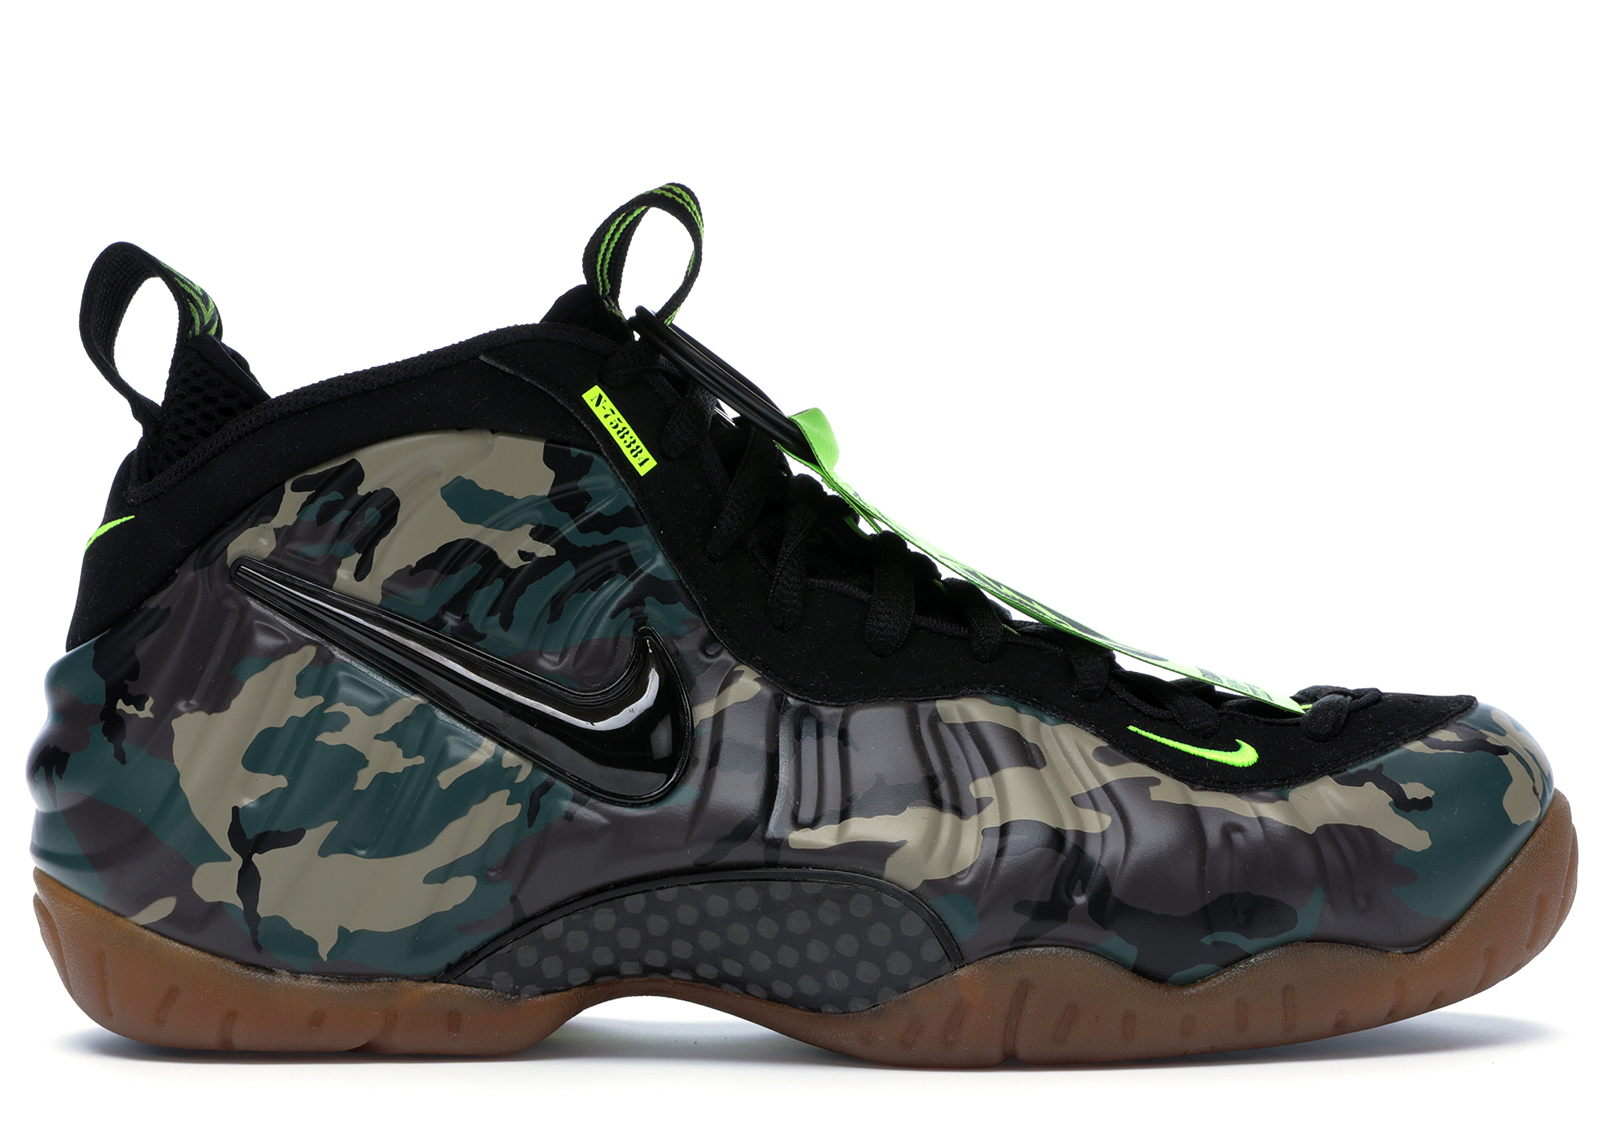 best loved a4d2e a7cb3 ... promo code for nike foamposite pro shoes average sale price efeea ad219